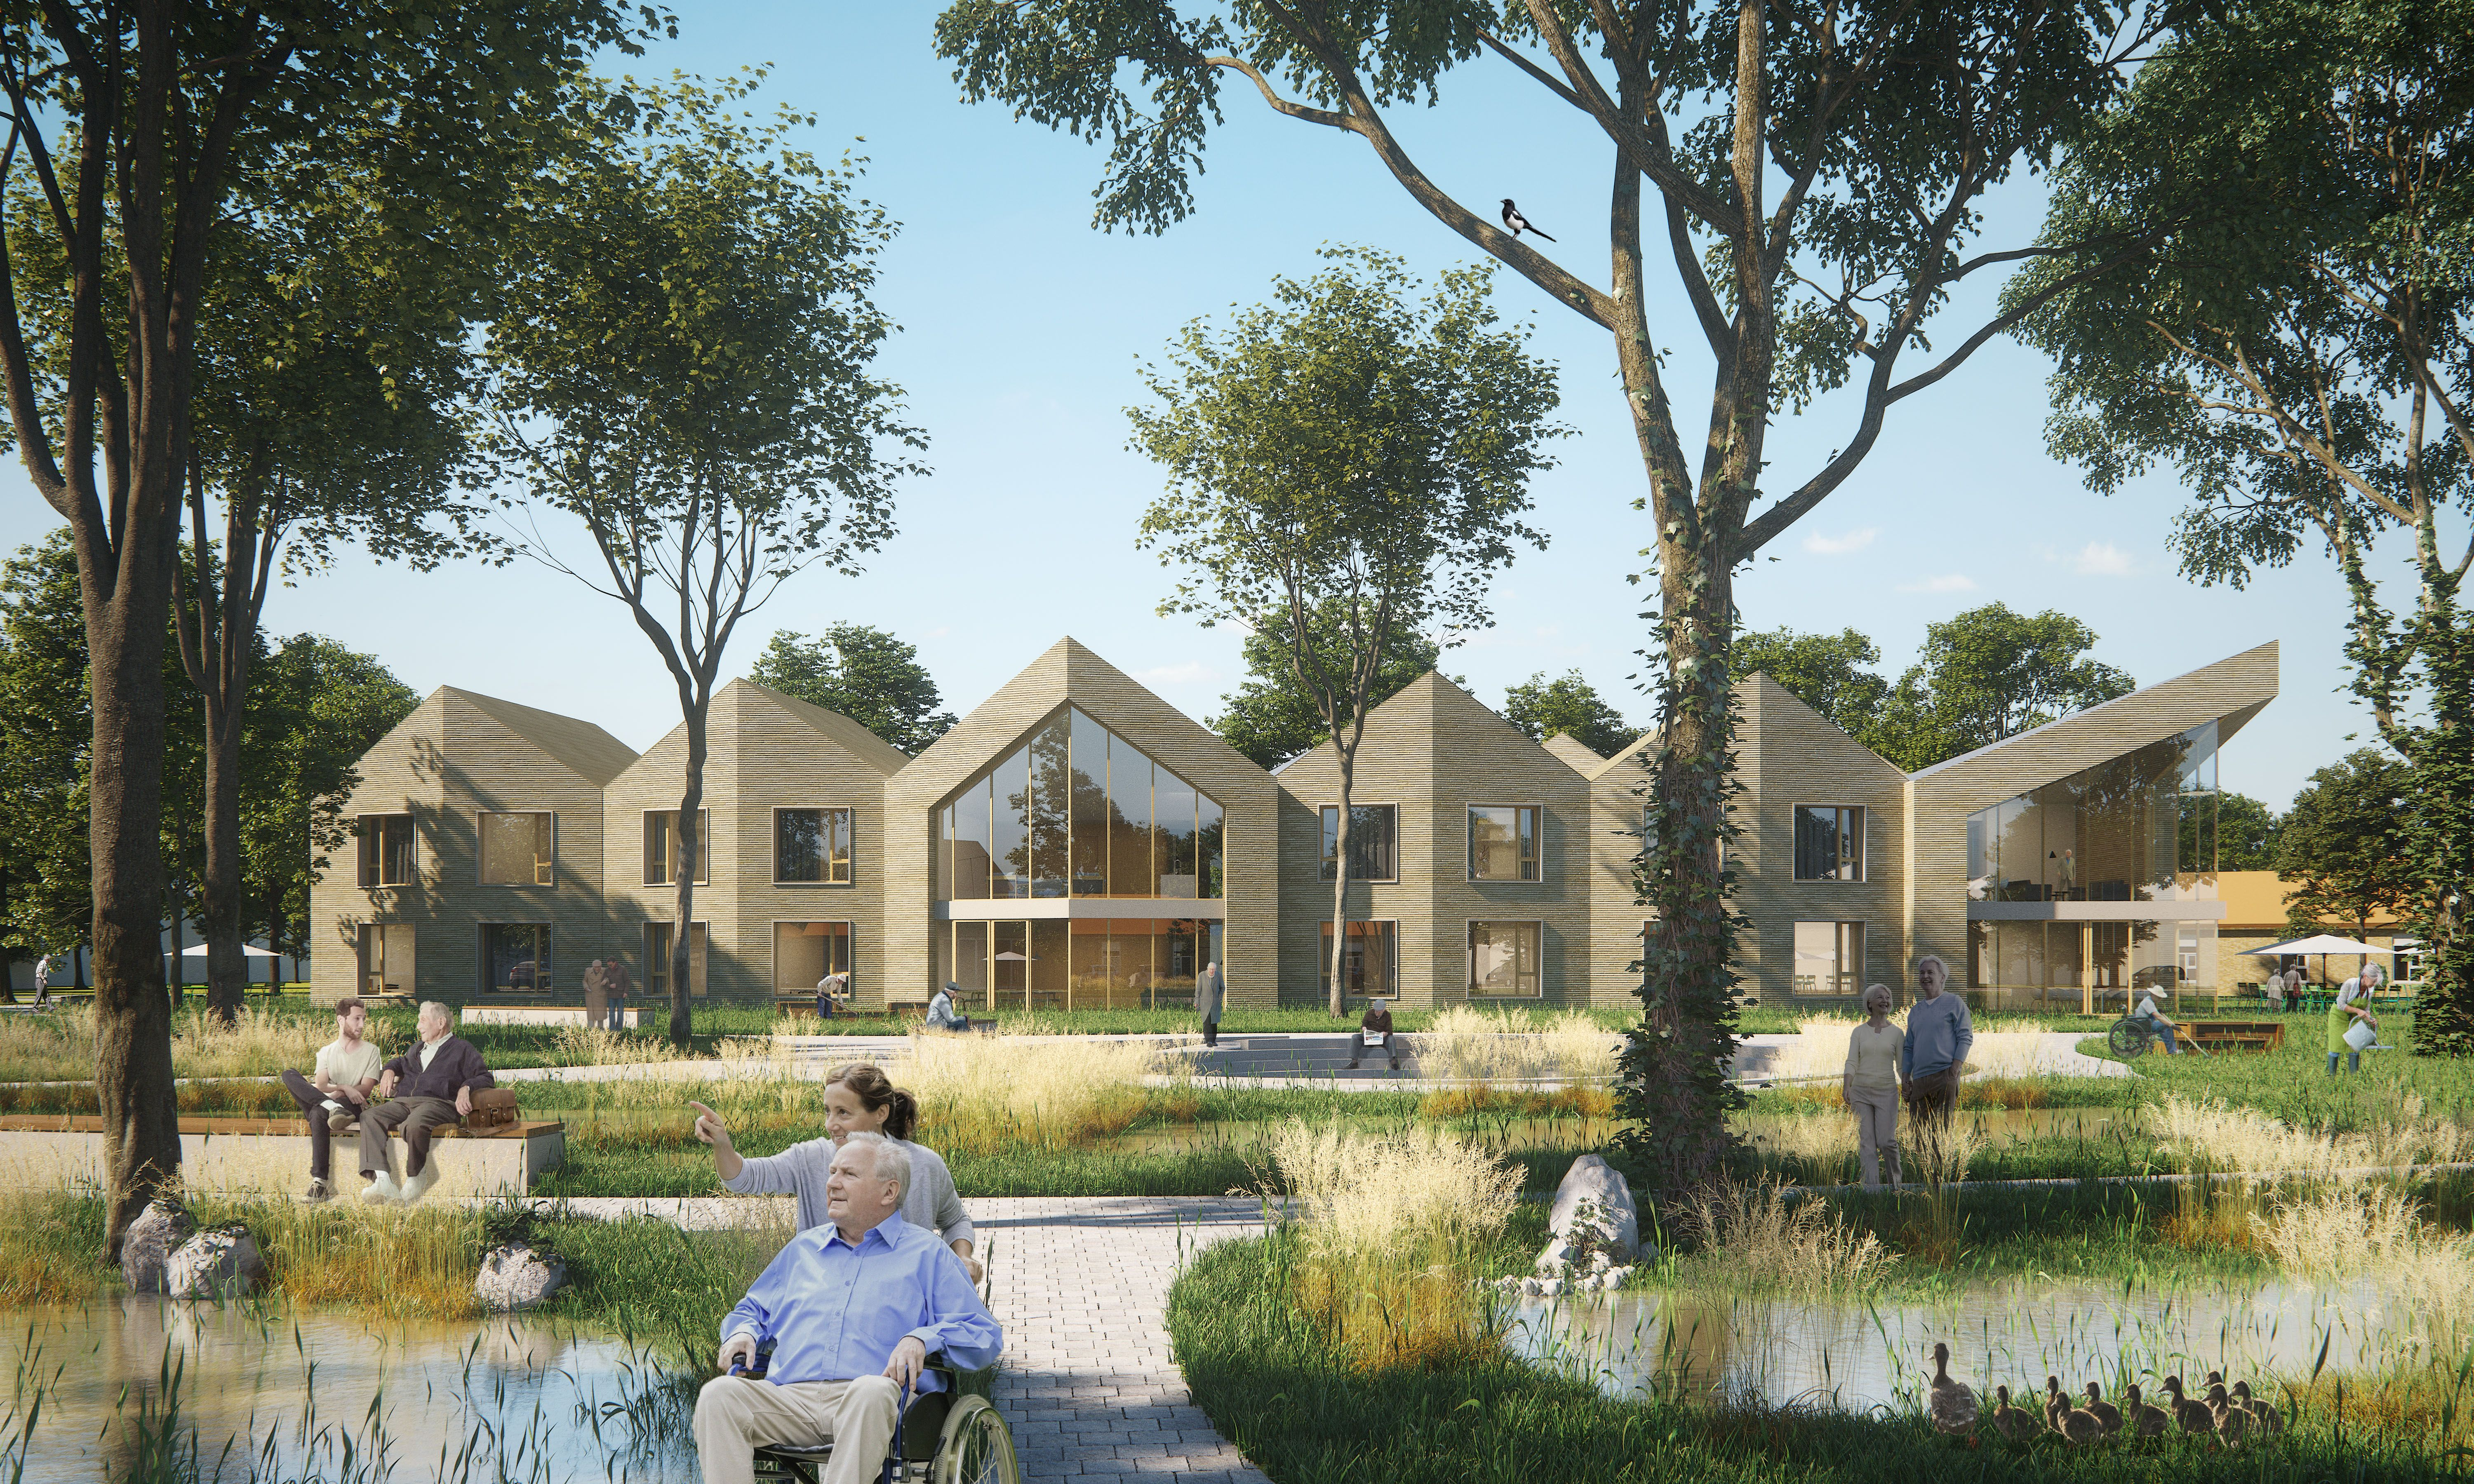 Design competition entry for a new Healthcare building in a park environment in Horst, NL.